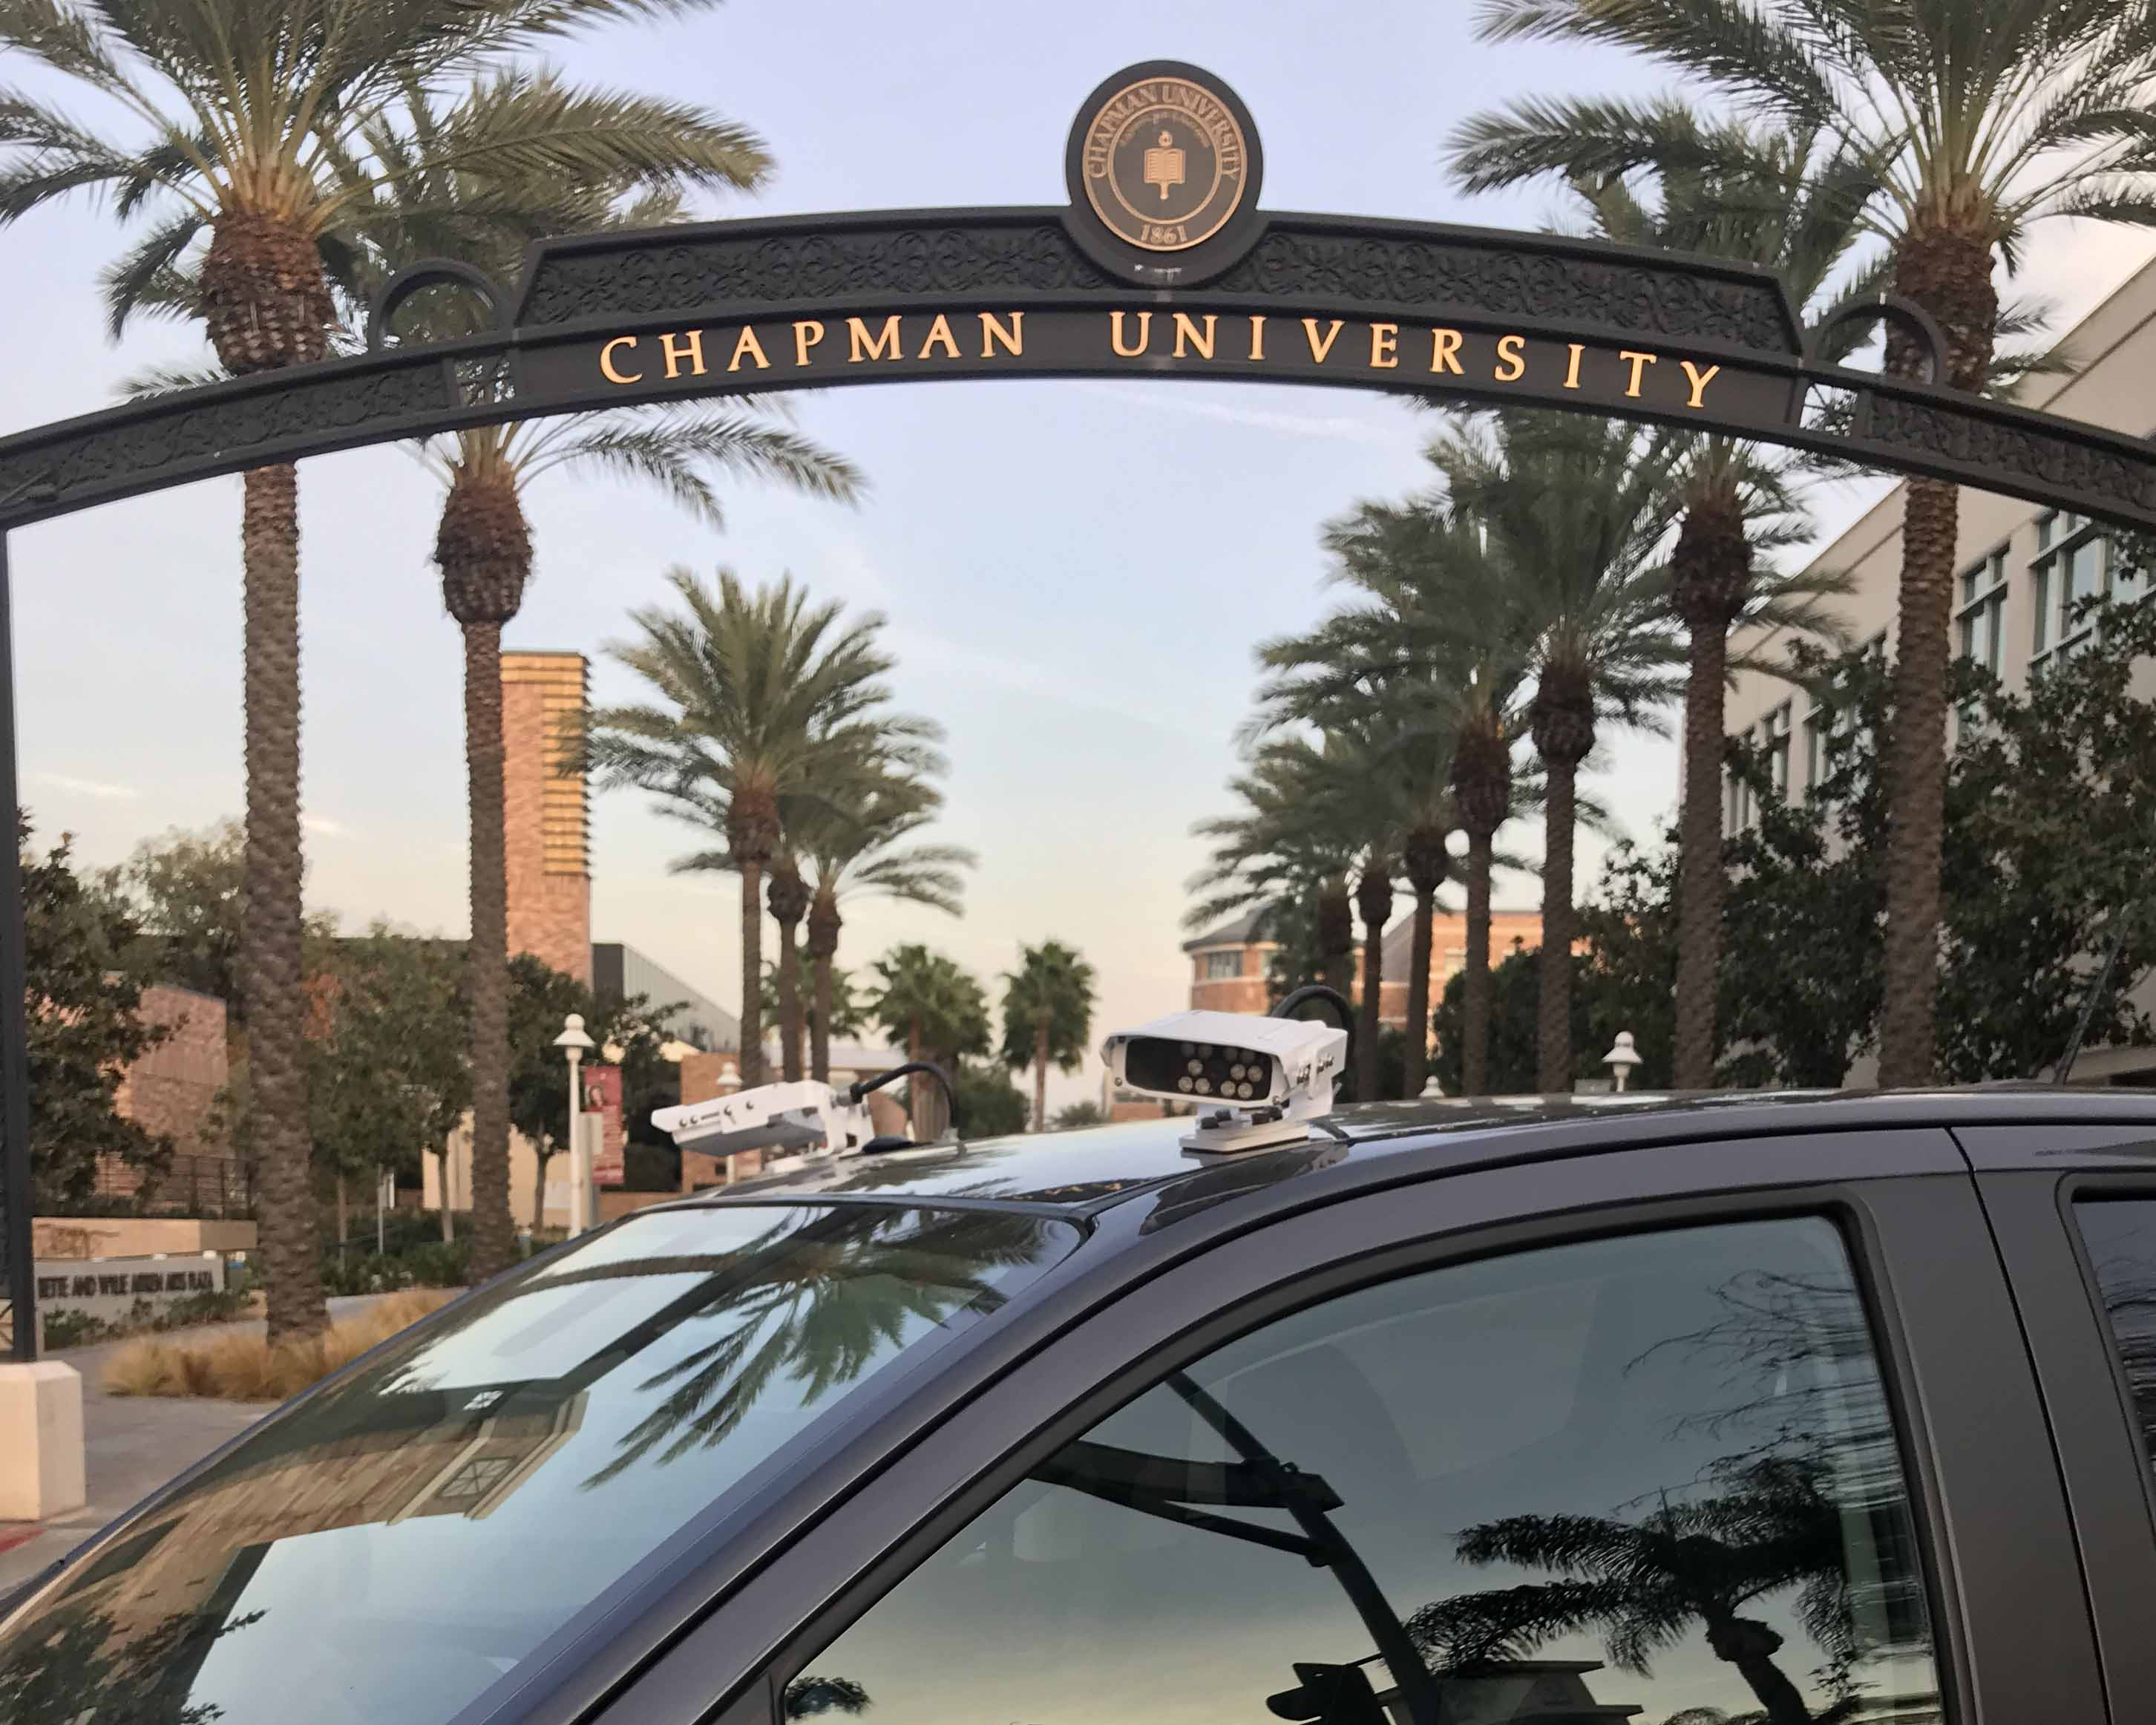 black Enforcement vehicle with two LPR cameras  in front of Chapman University entrance gate